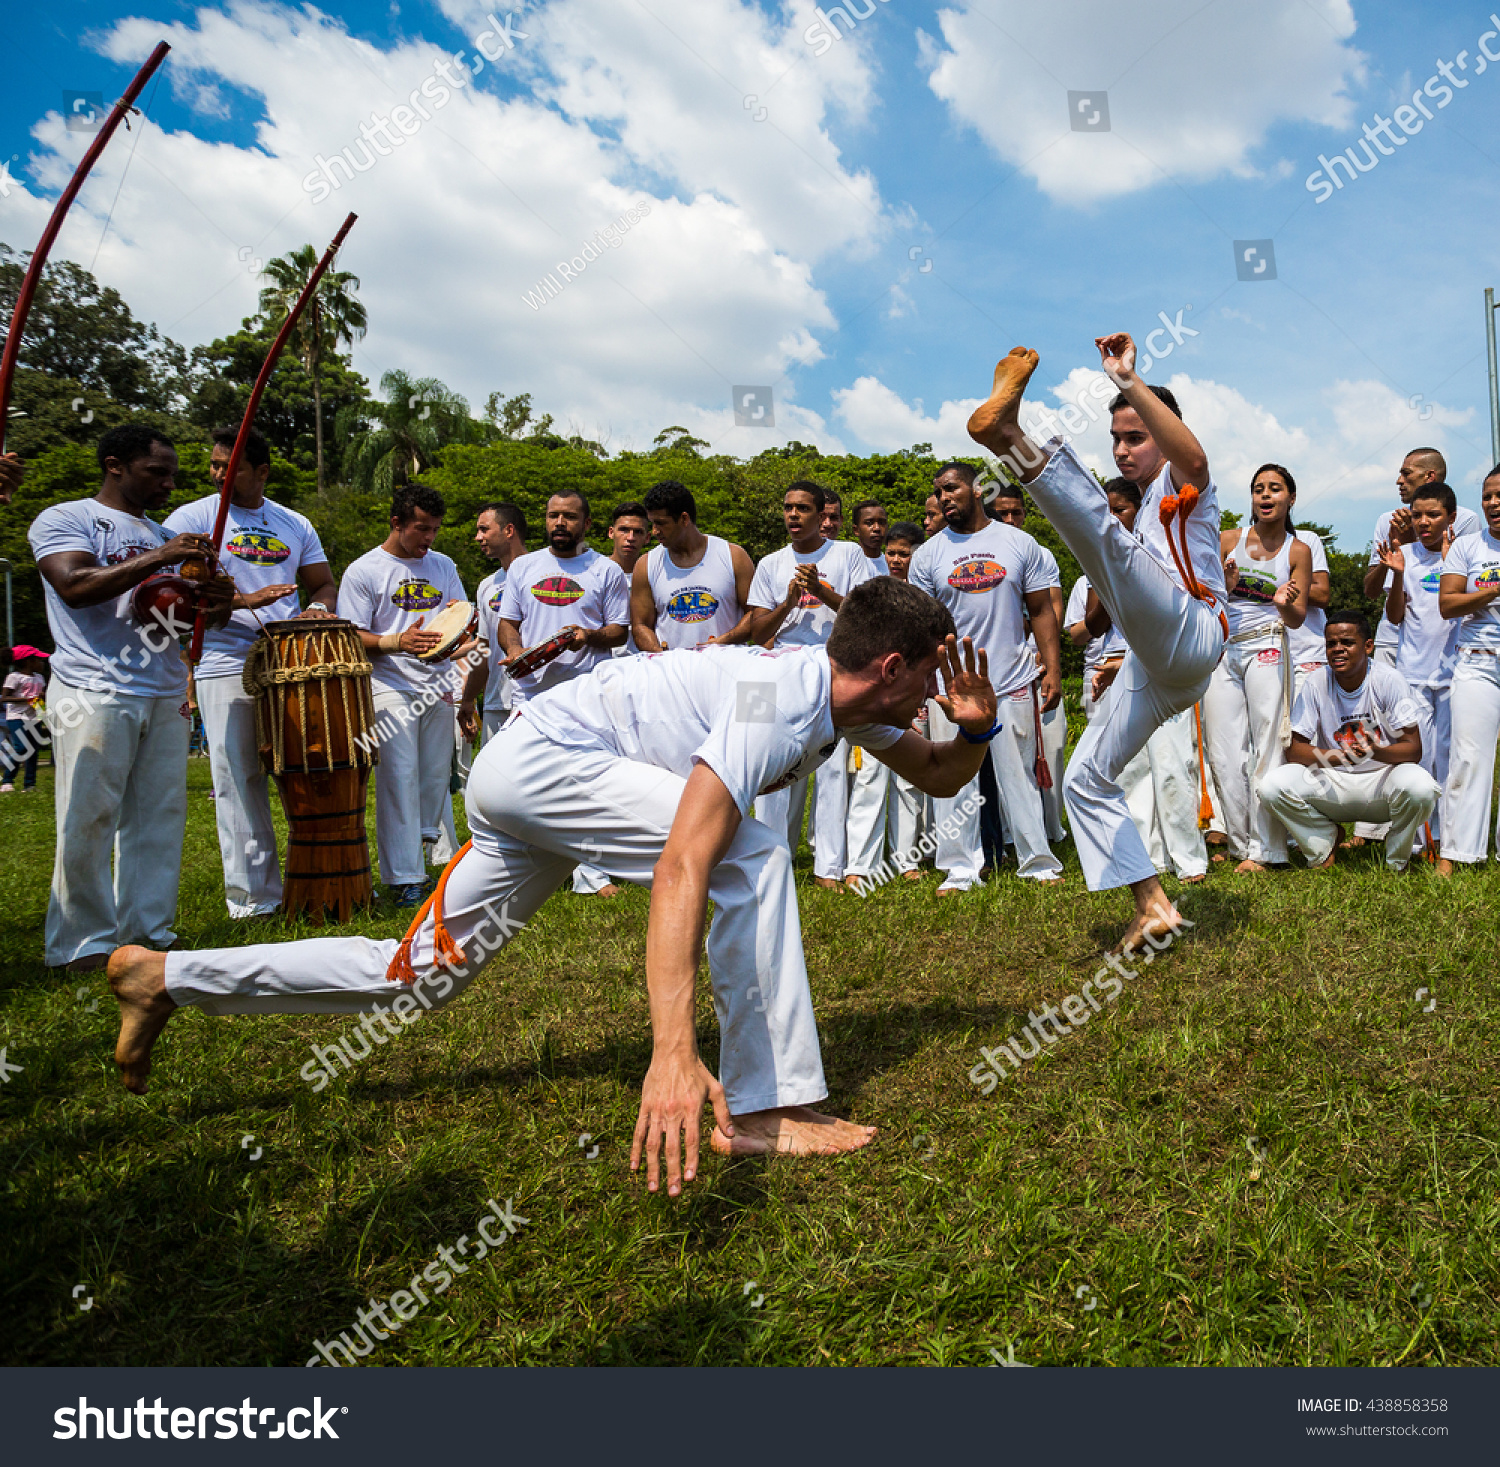 Sao Paulo Brazil 03 April 2016 Group of Brazilian capoeiristas performing at the Ibirapuera Park in Sao Paulo Brazil